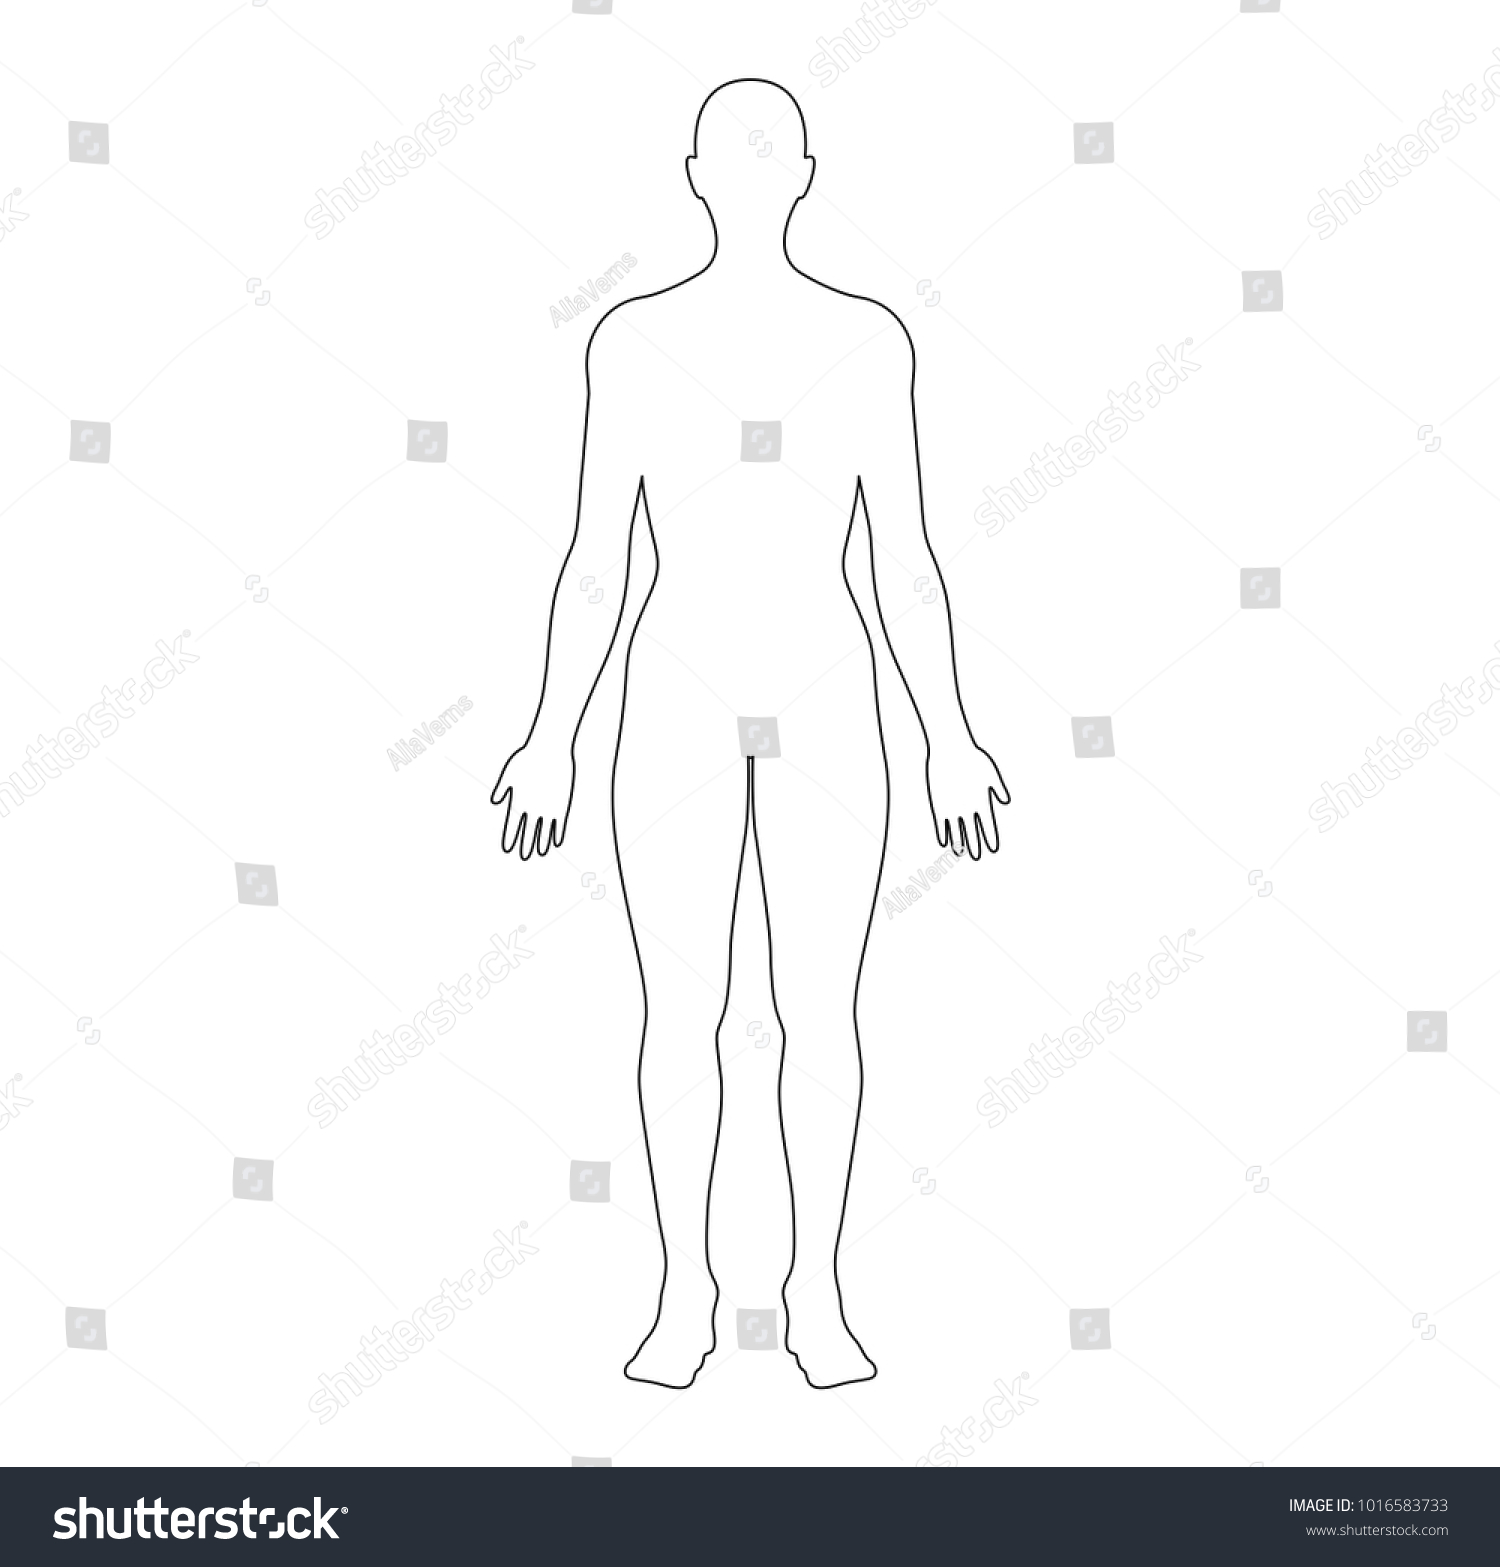 Anatomical Position Anterior View Female Body Stock Vector (Royalty ...